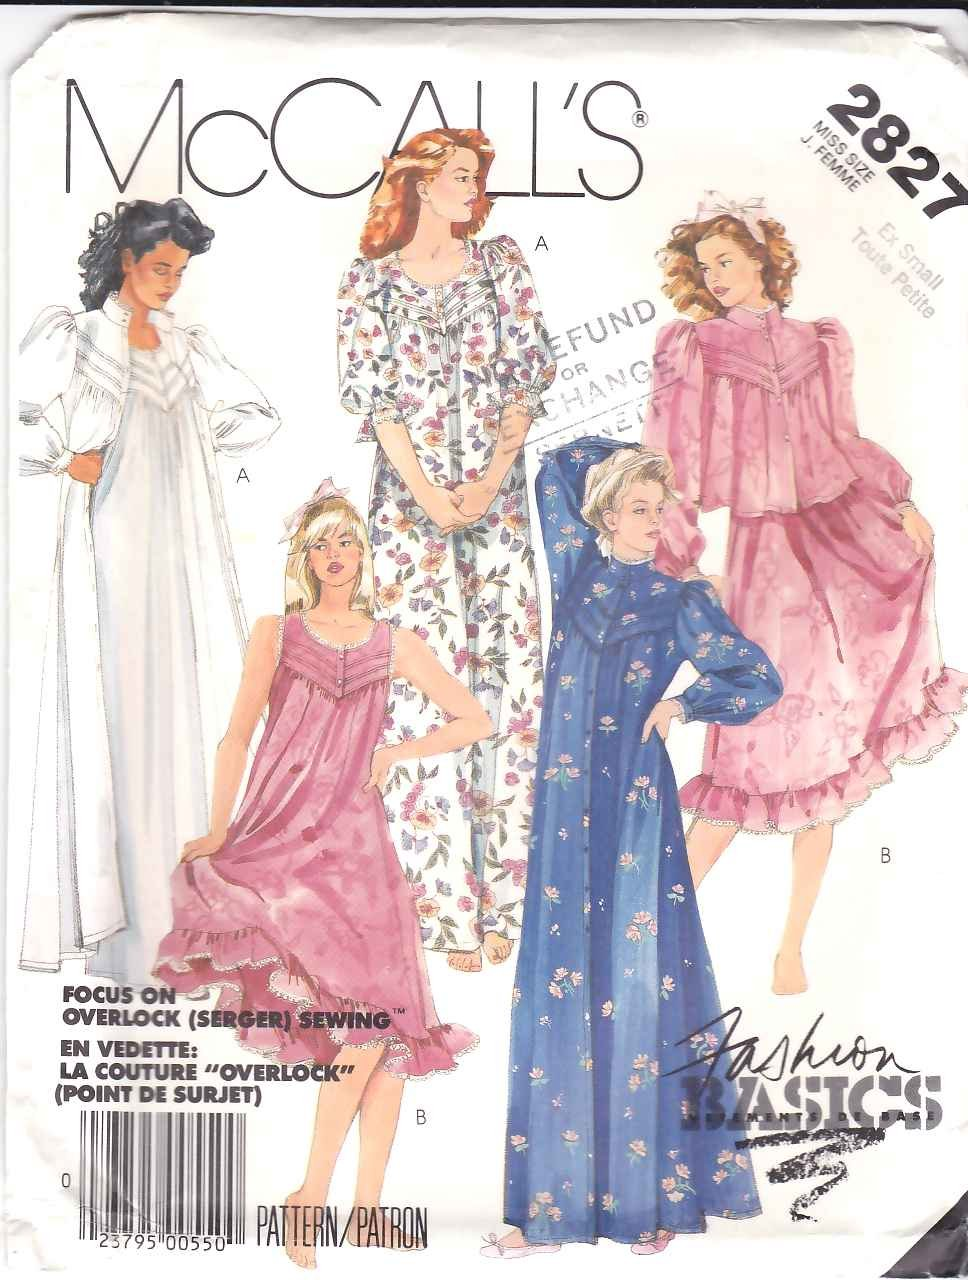 McCall's Sewing Pattern 2827 Misses Size 10-12 Basic Nightgown Robe Bathrobe Bed Jacket